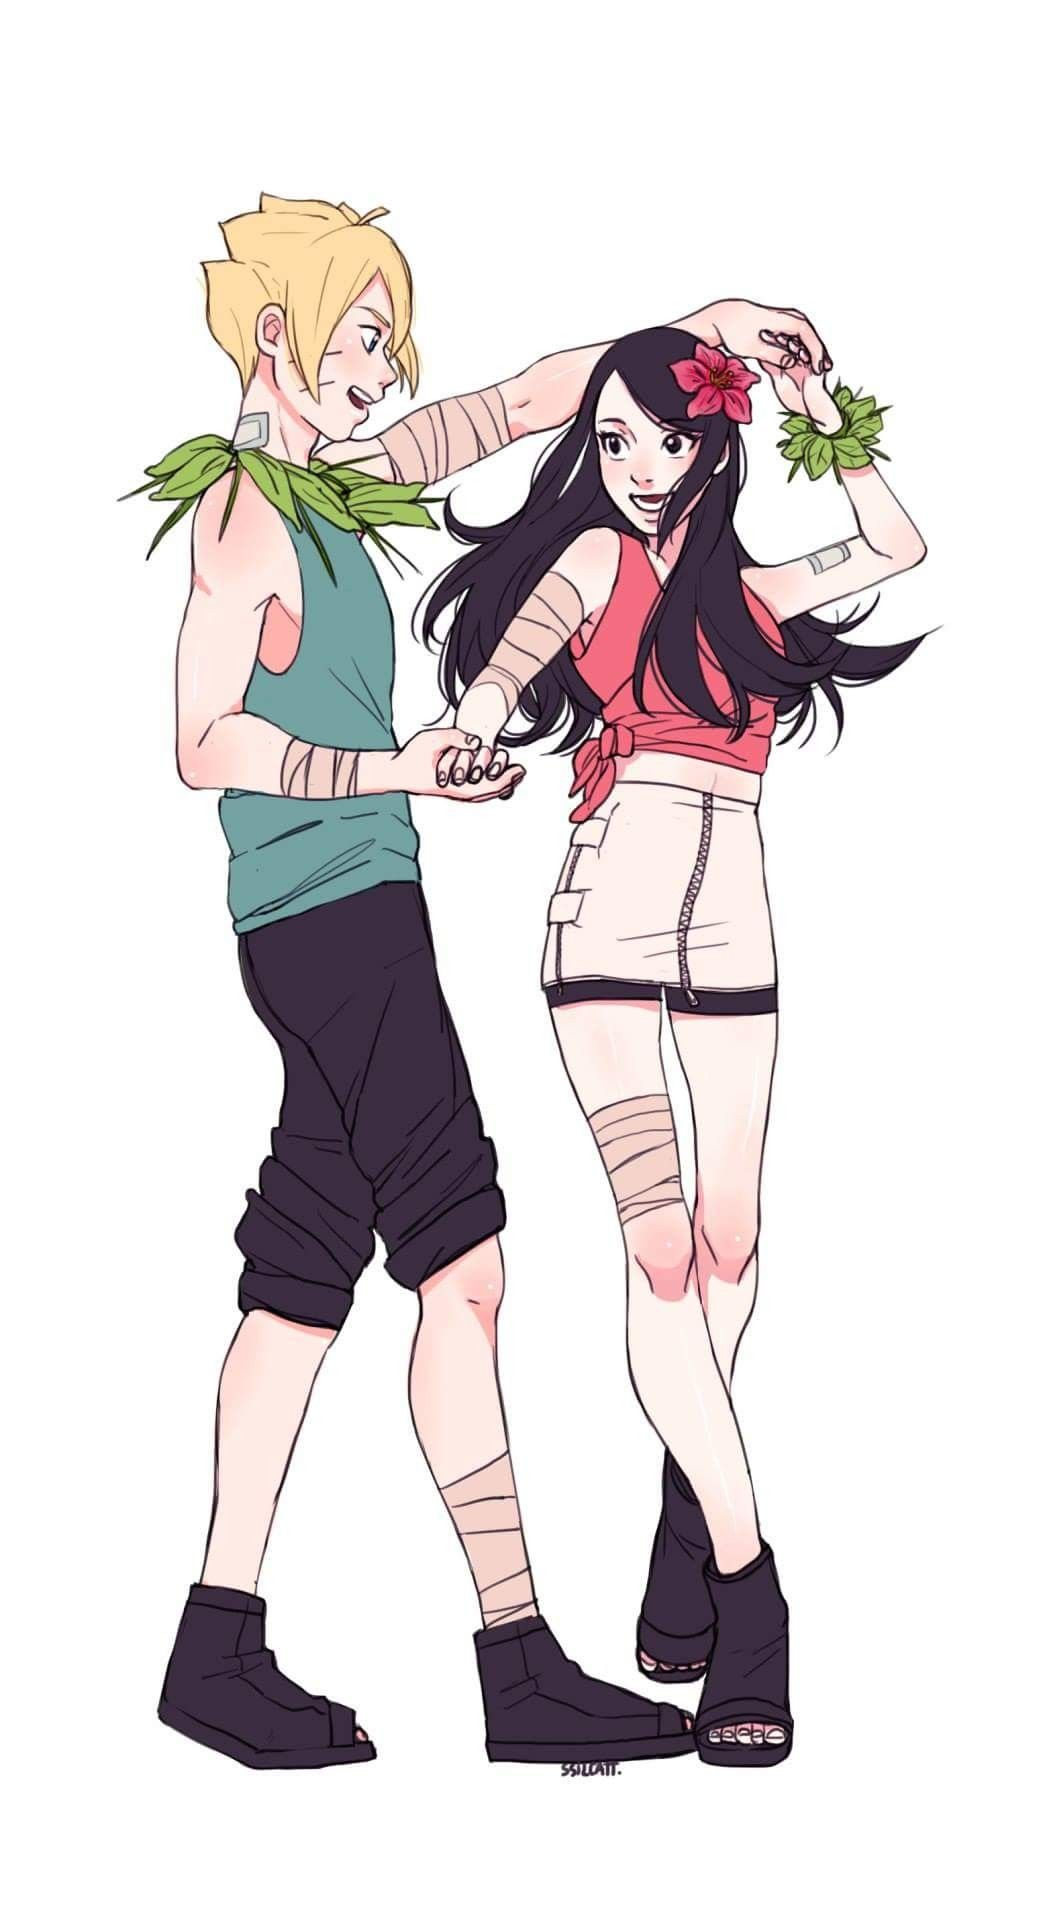 Boruto and Sarada They're so cute together BoruSara ️ ️ ️